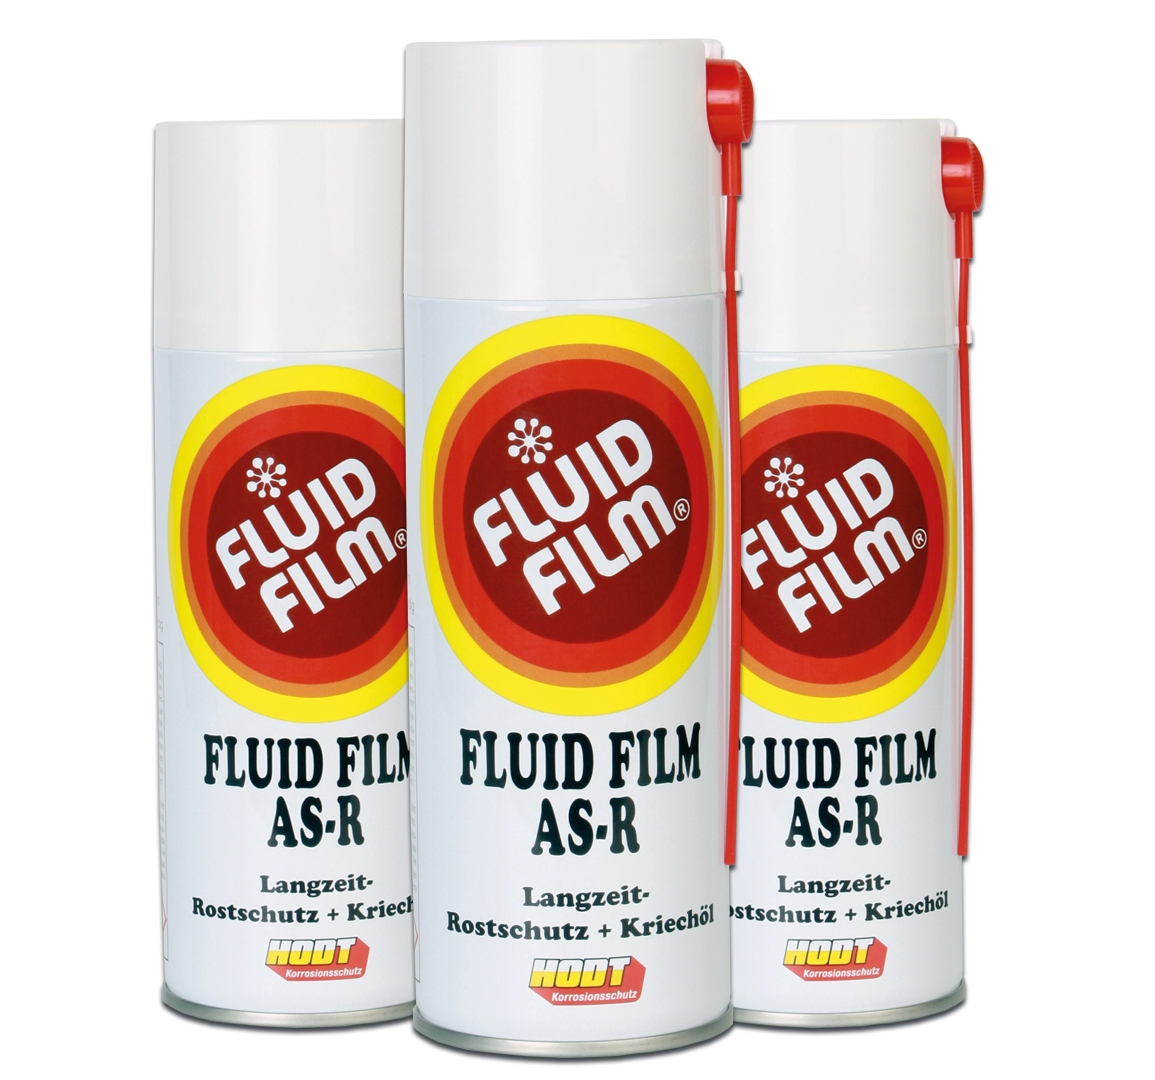 3 x Fluid Film AS-R + holleruimteslang